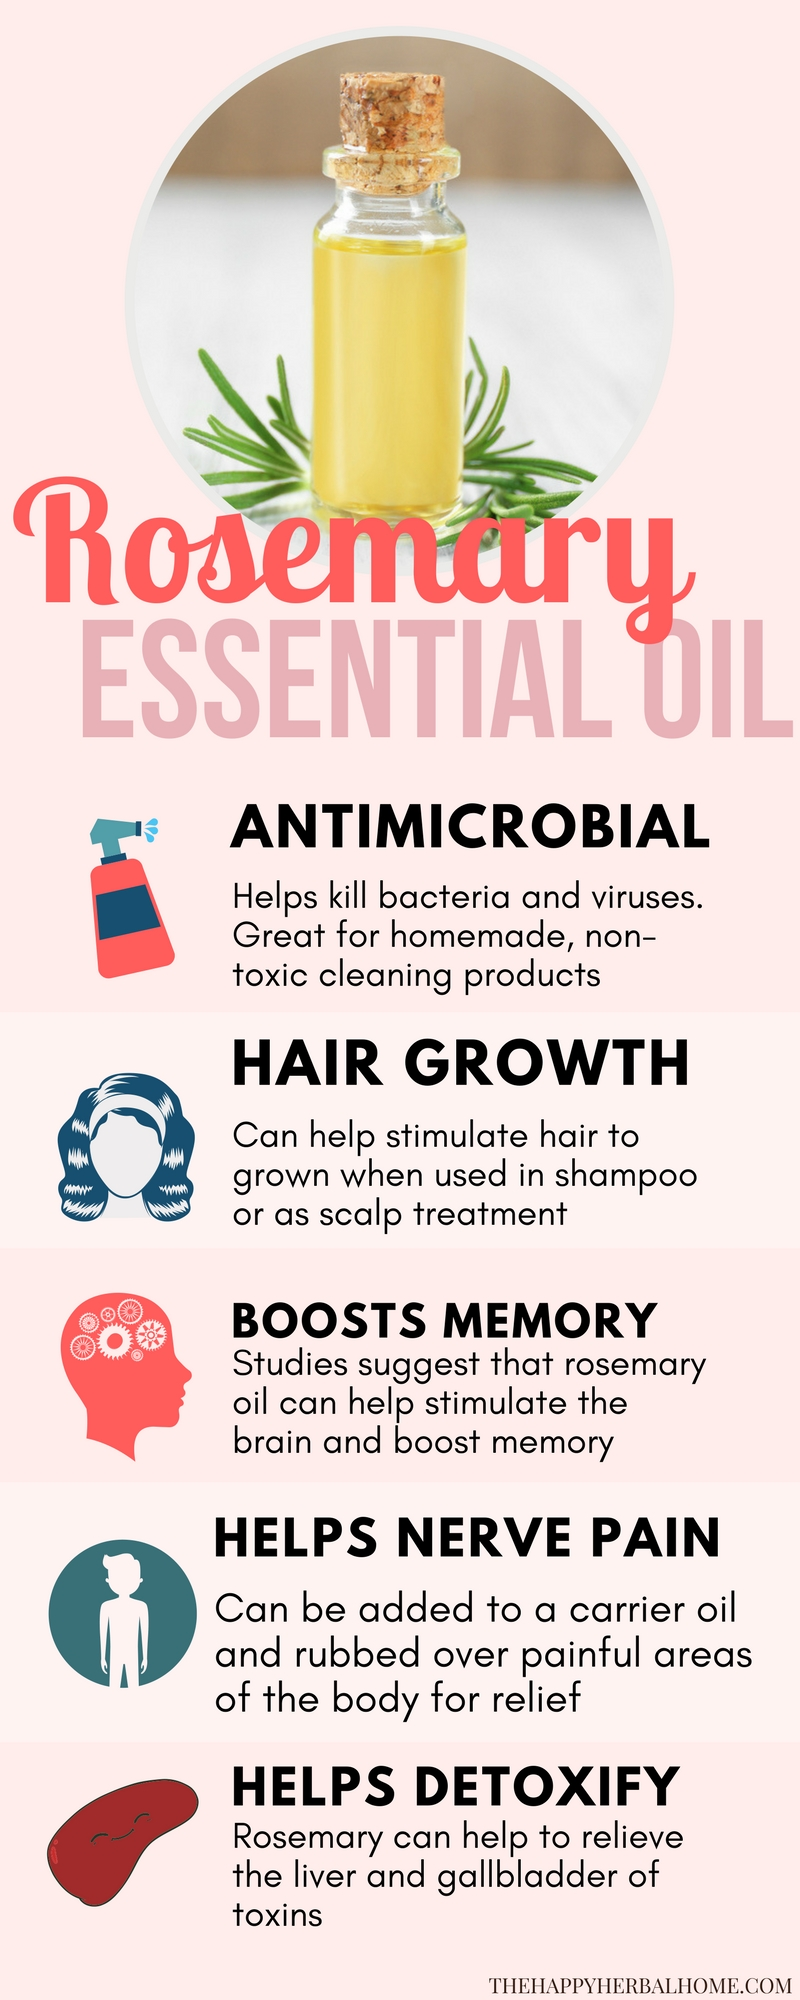 Rosemary essential oil benefits and uses. Great for boosting memory, stimulating the body, helping to detox organs.